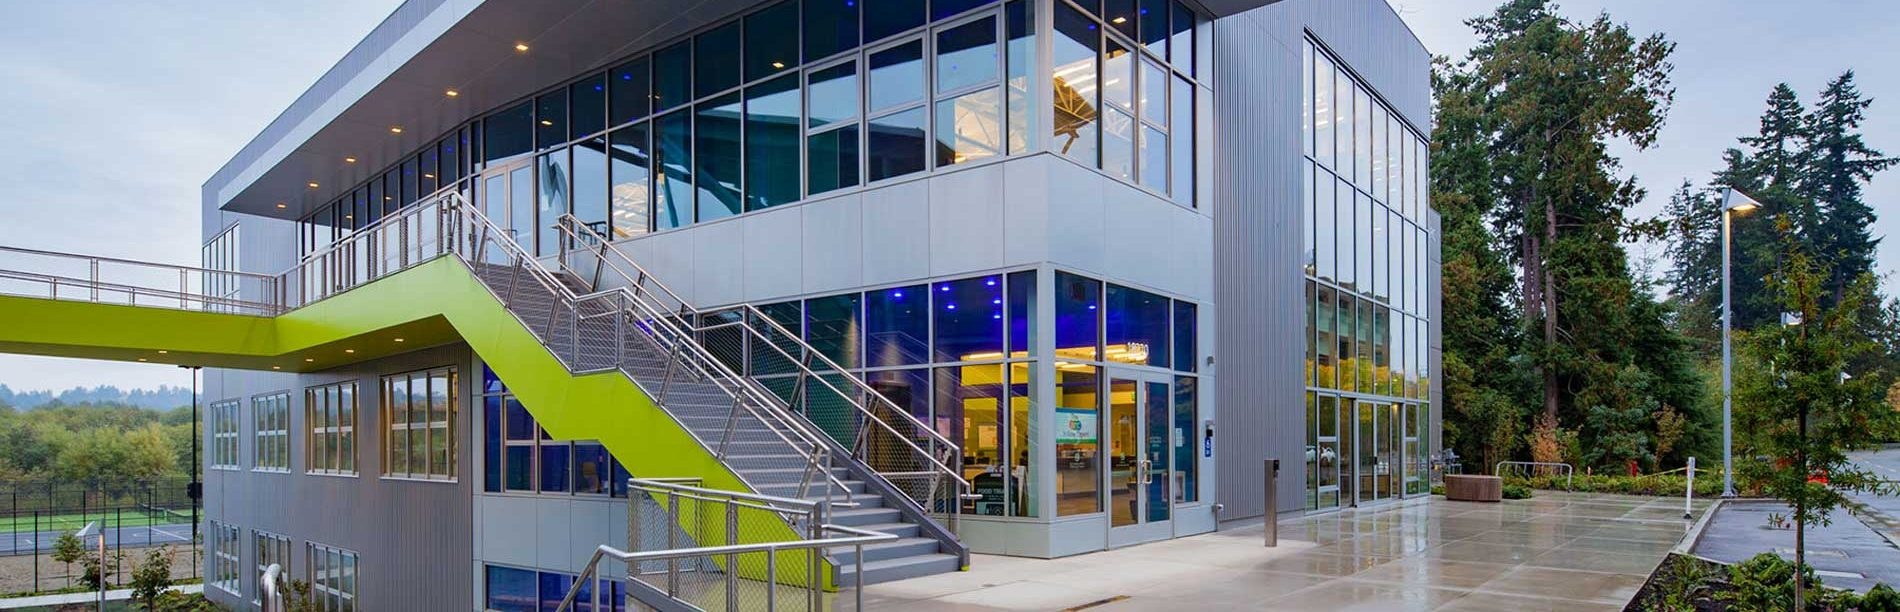 Resilient and Sustainable Building Design - Glumac MEP Engineering